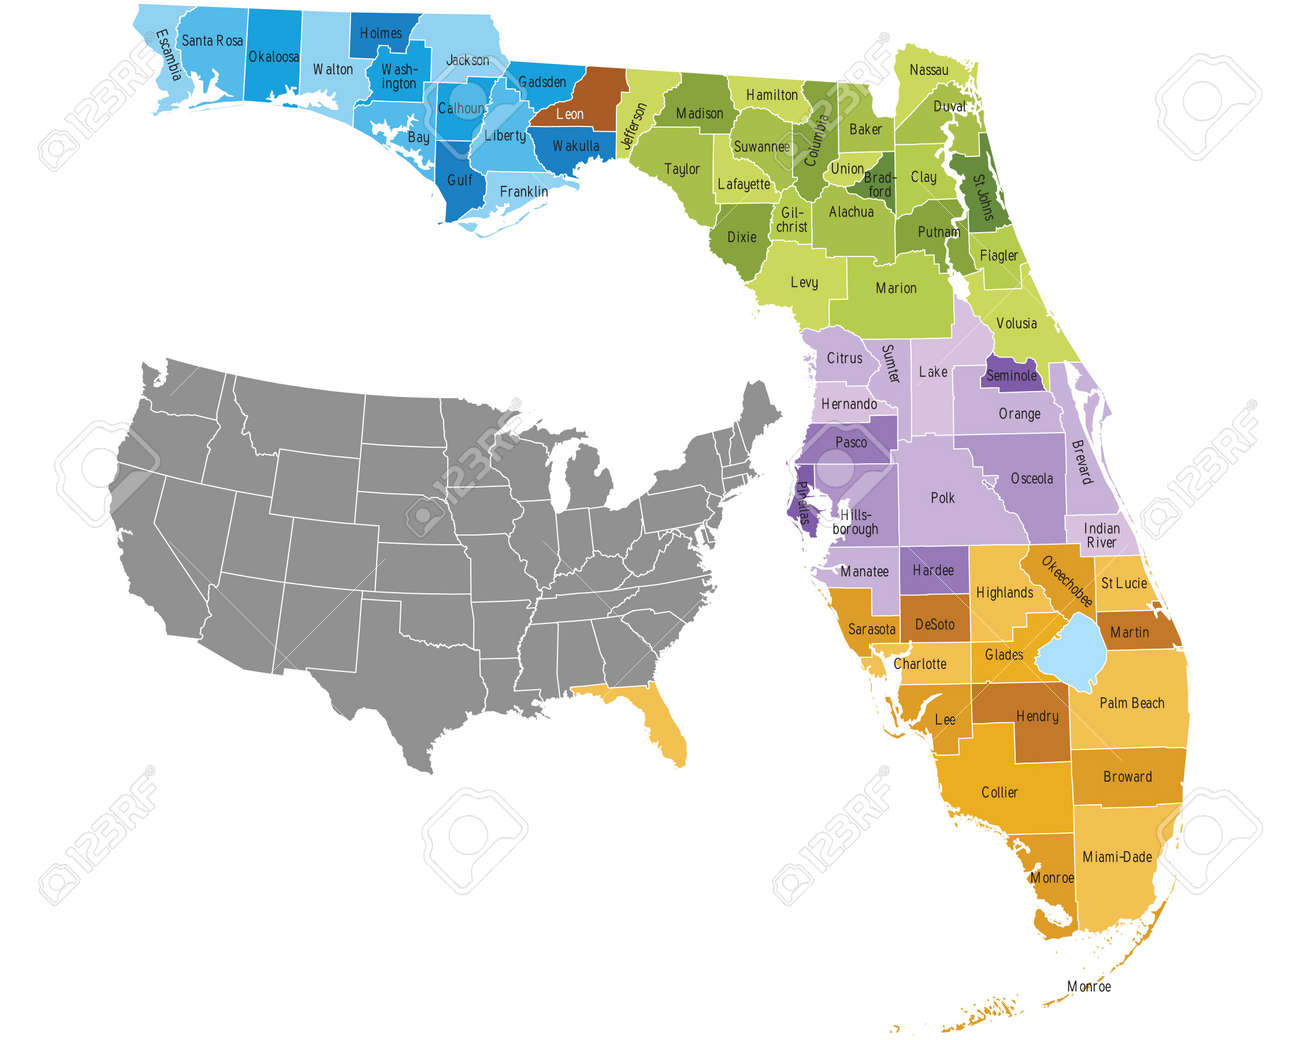 Florida State Counties Map With Boundaries And Names Royalty Free - Florida map state